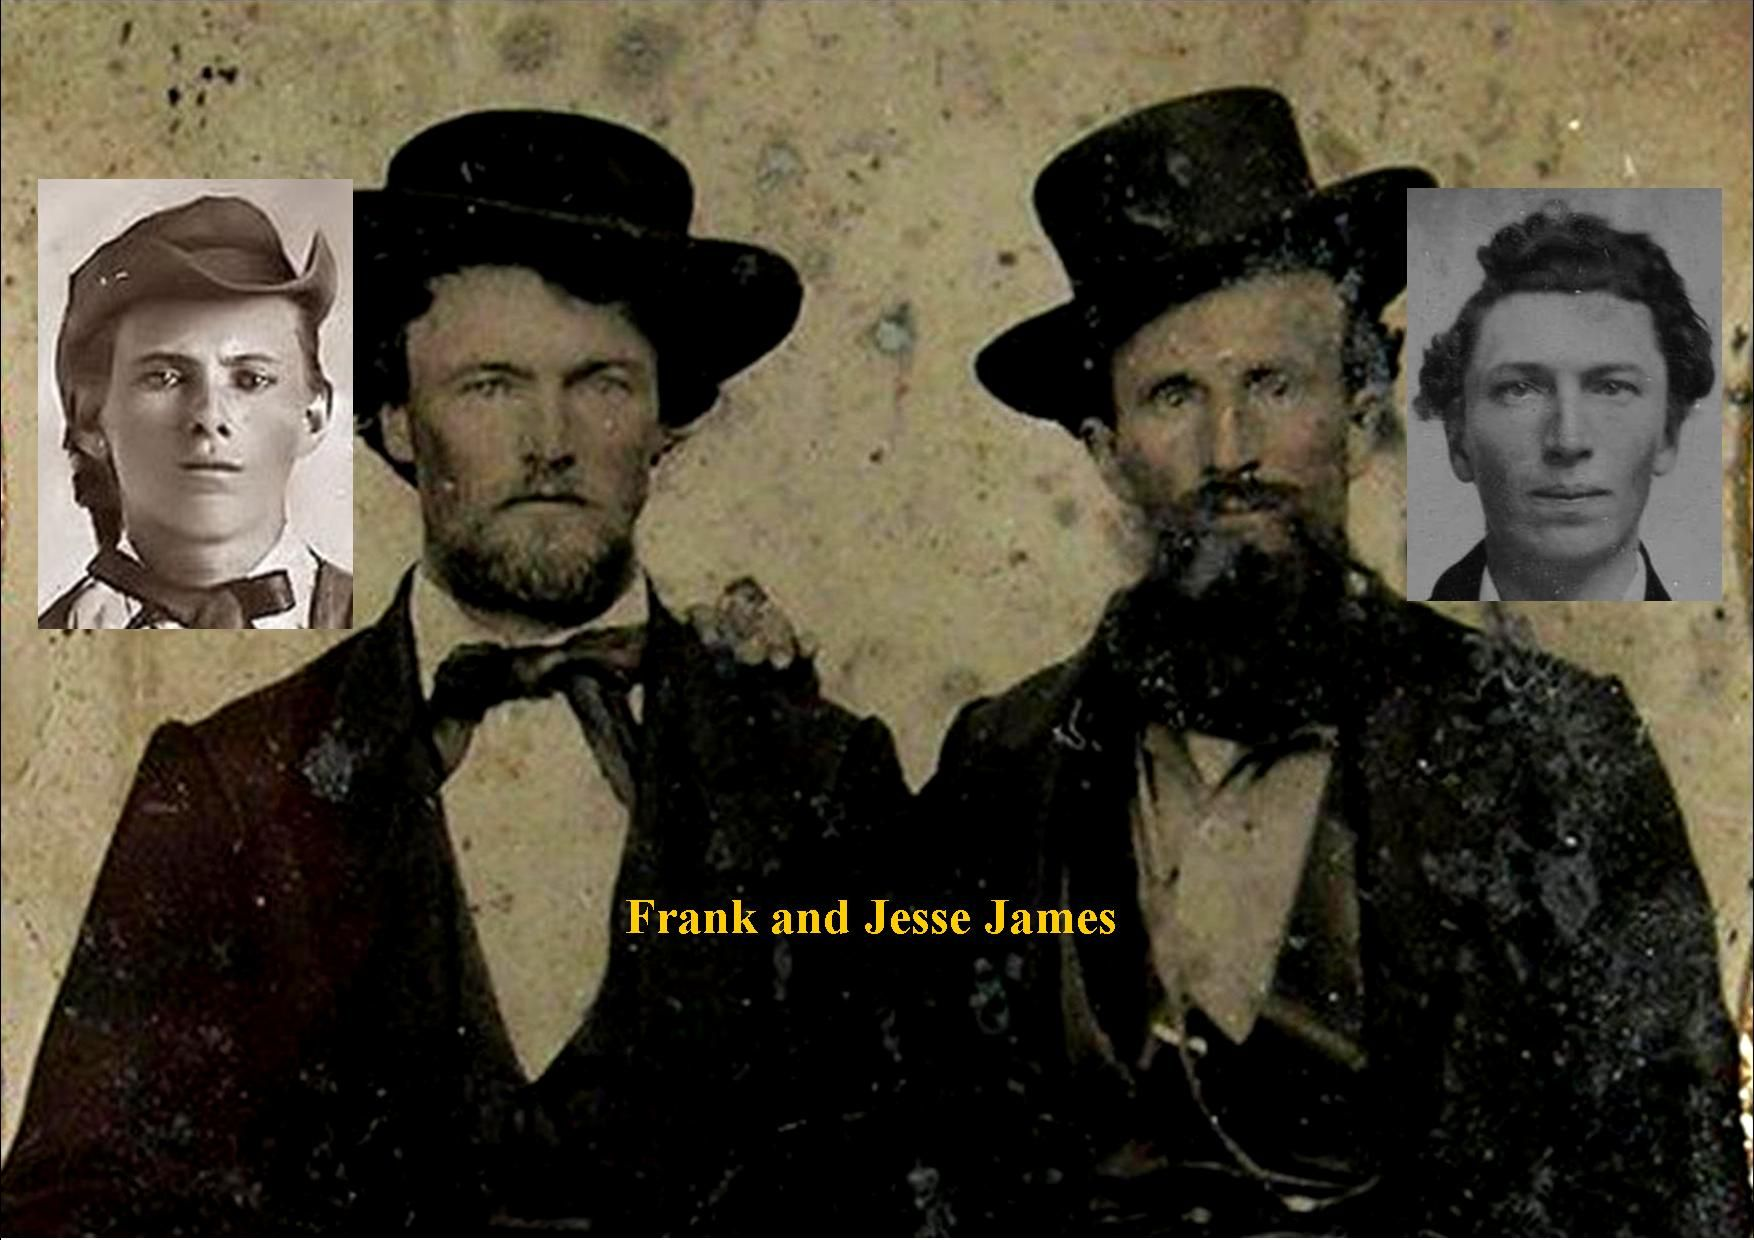 Southern Gents With Images Frank James Jesse James The Past